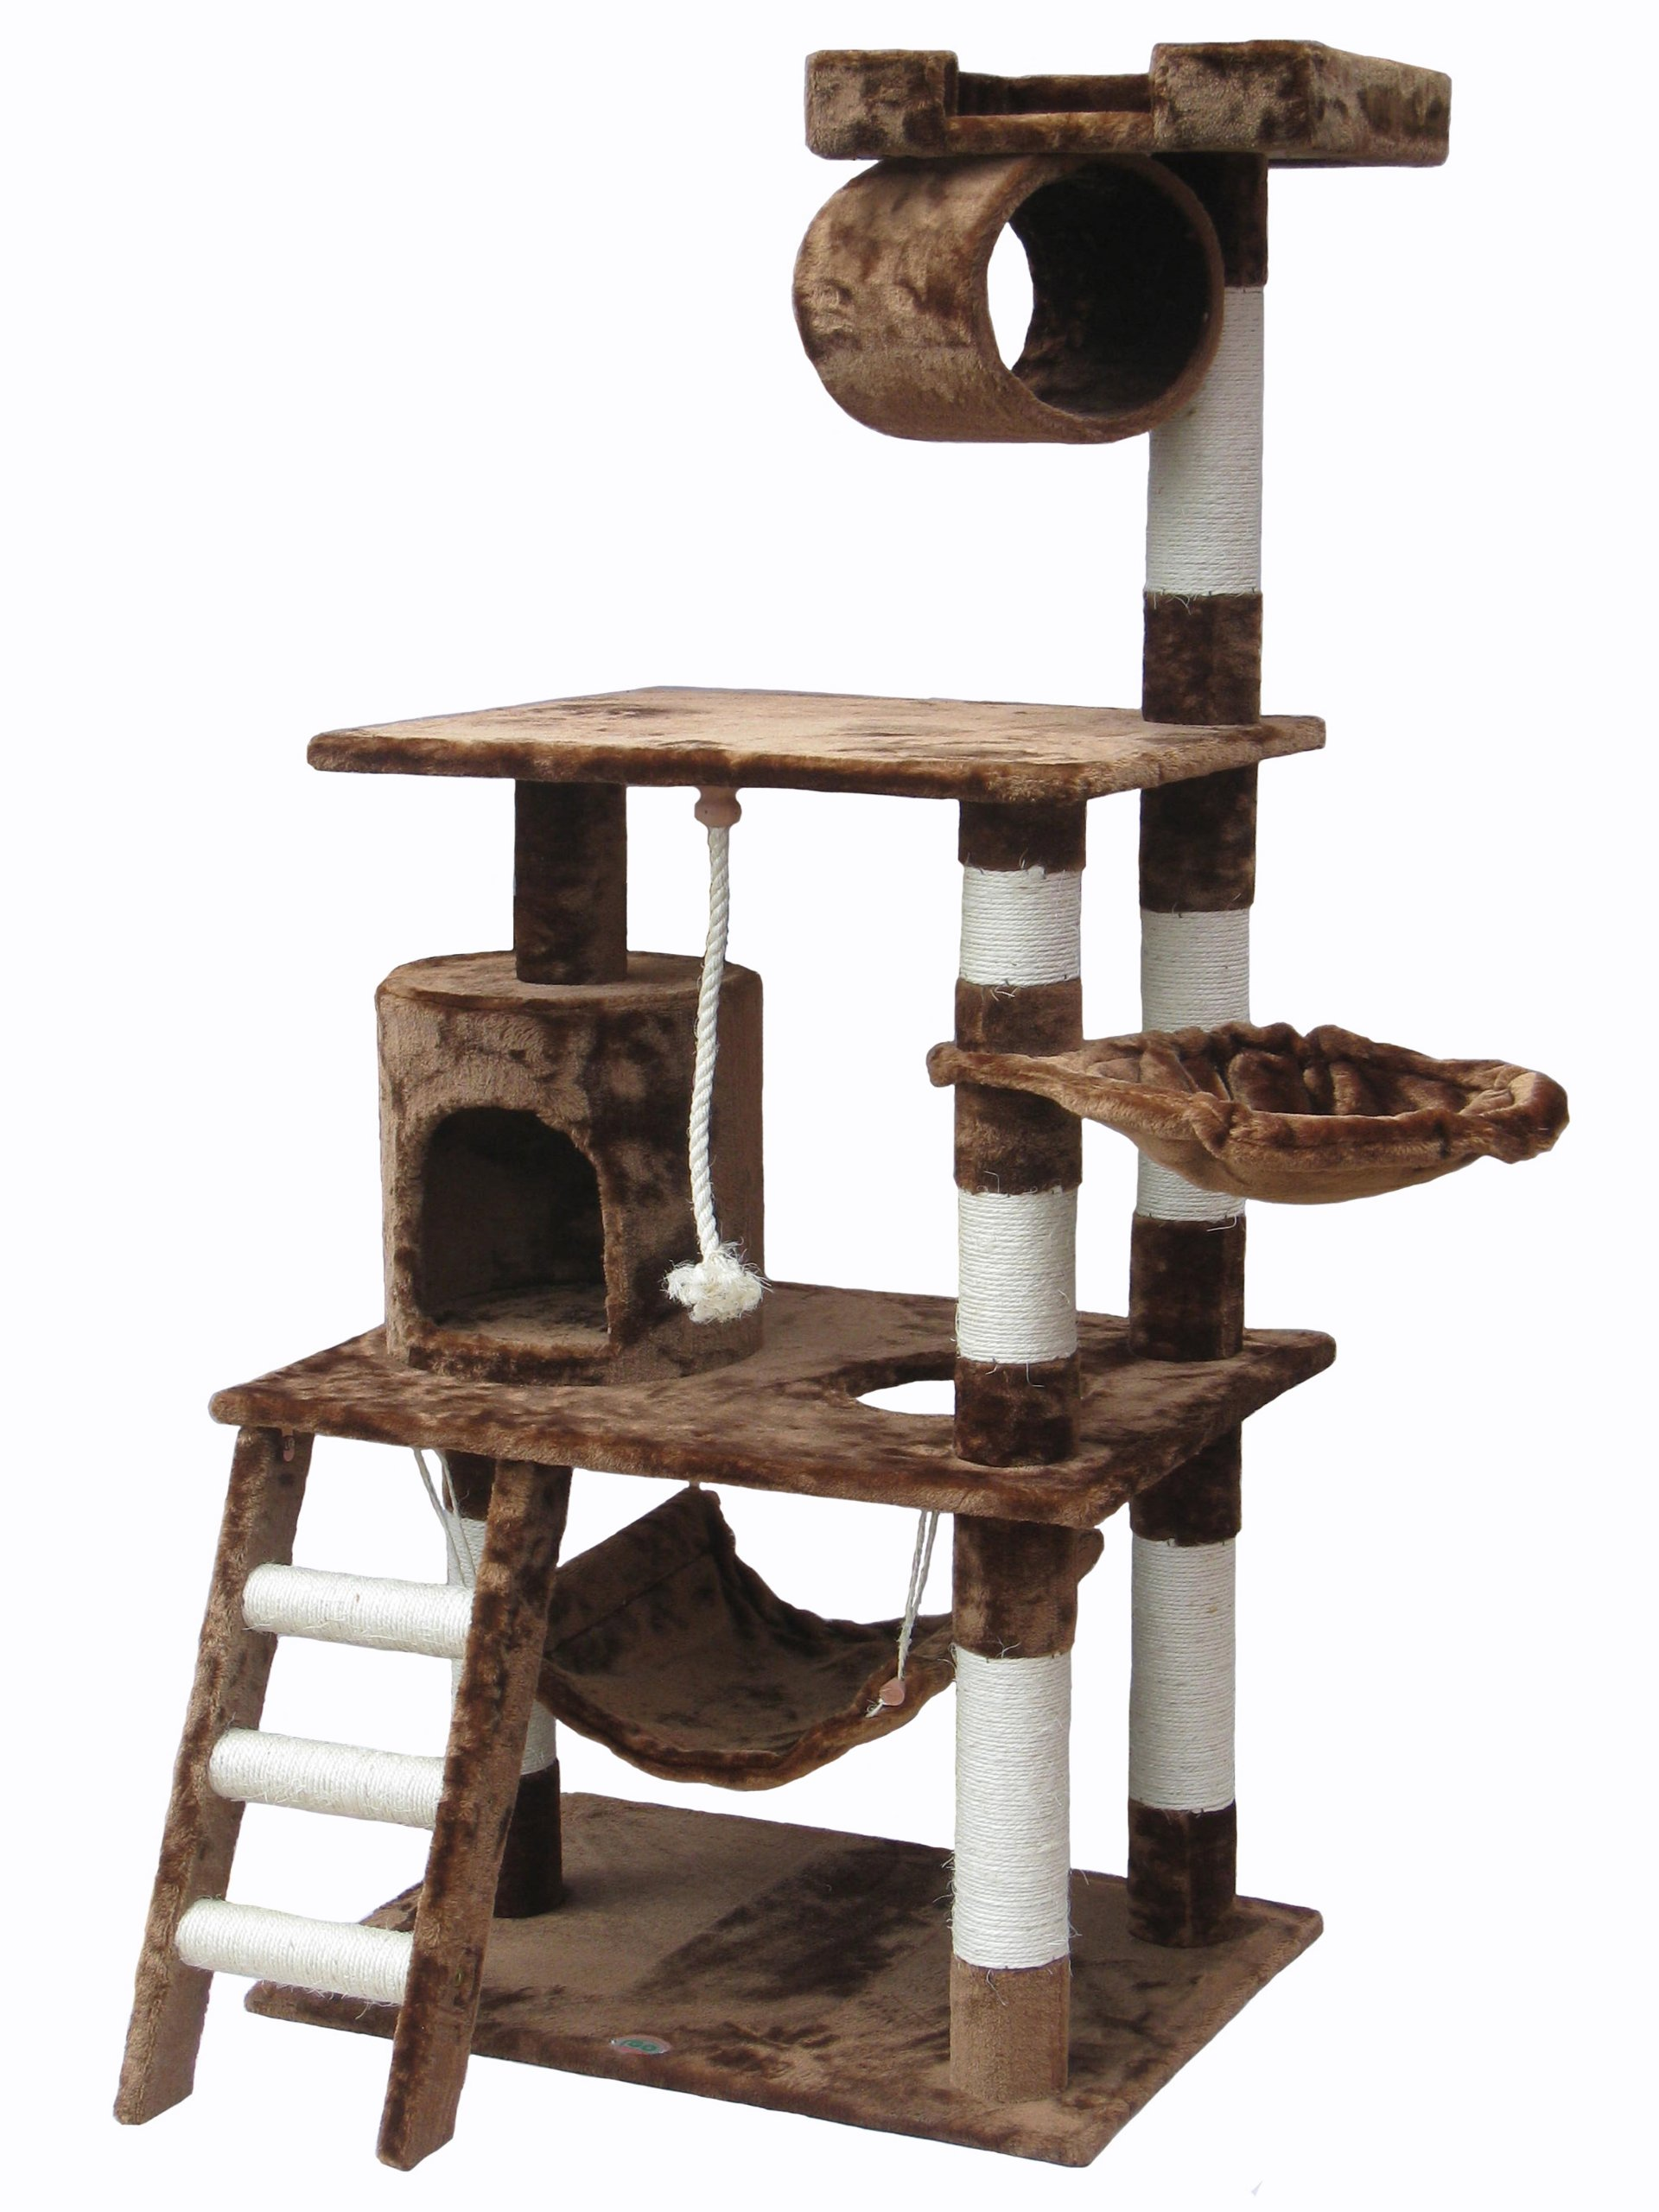 Go Pet Club Cat Tree Furniture 62 in High Brown